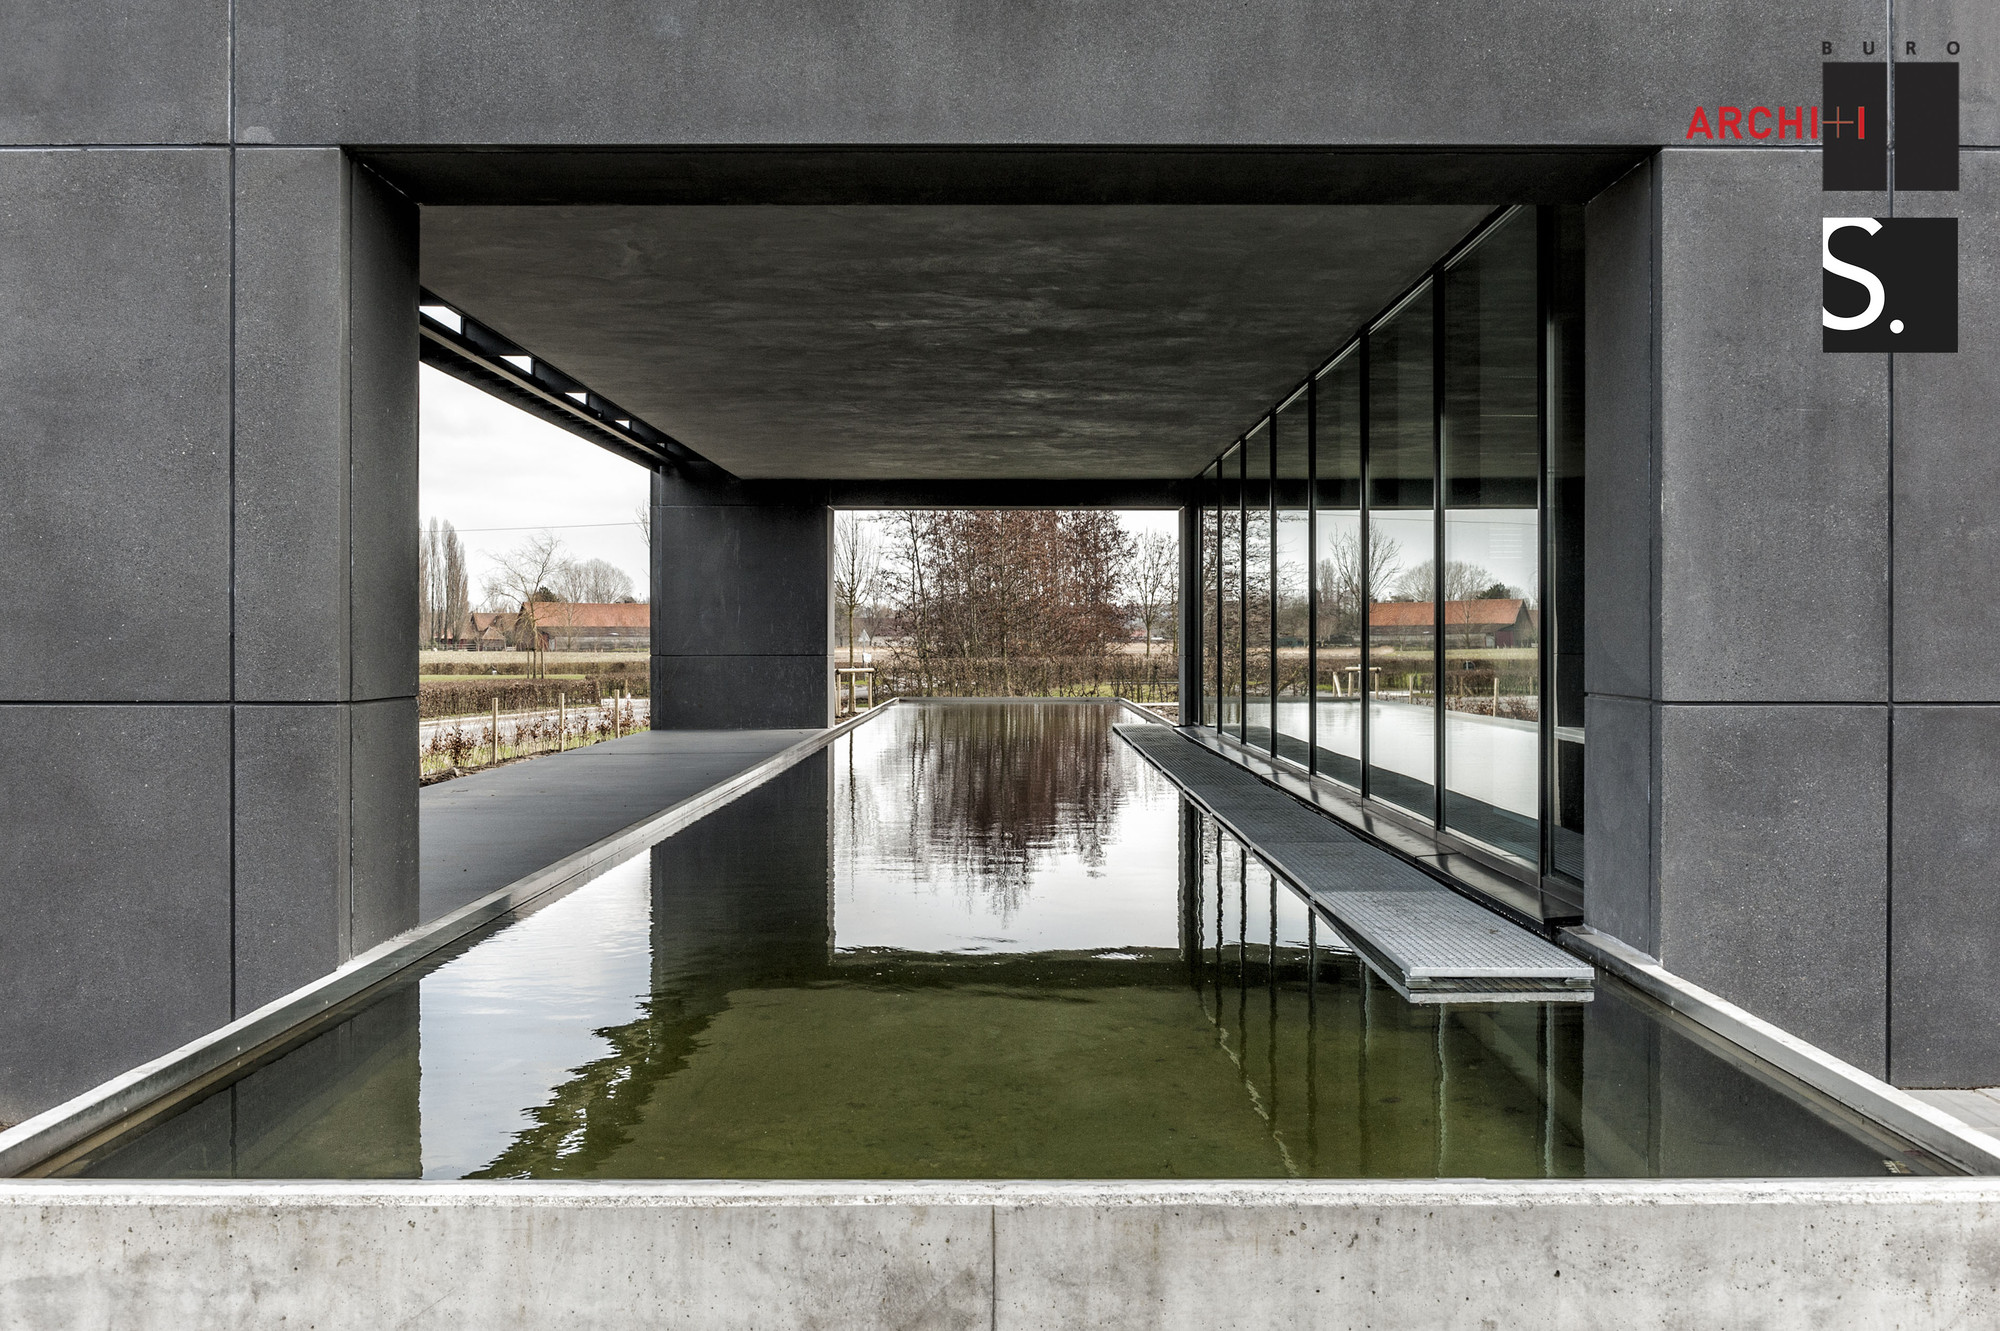 Gallery of bekaert office building buro ii archi i for Buro ii archi i